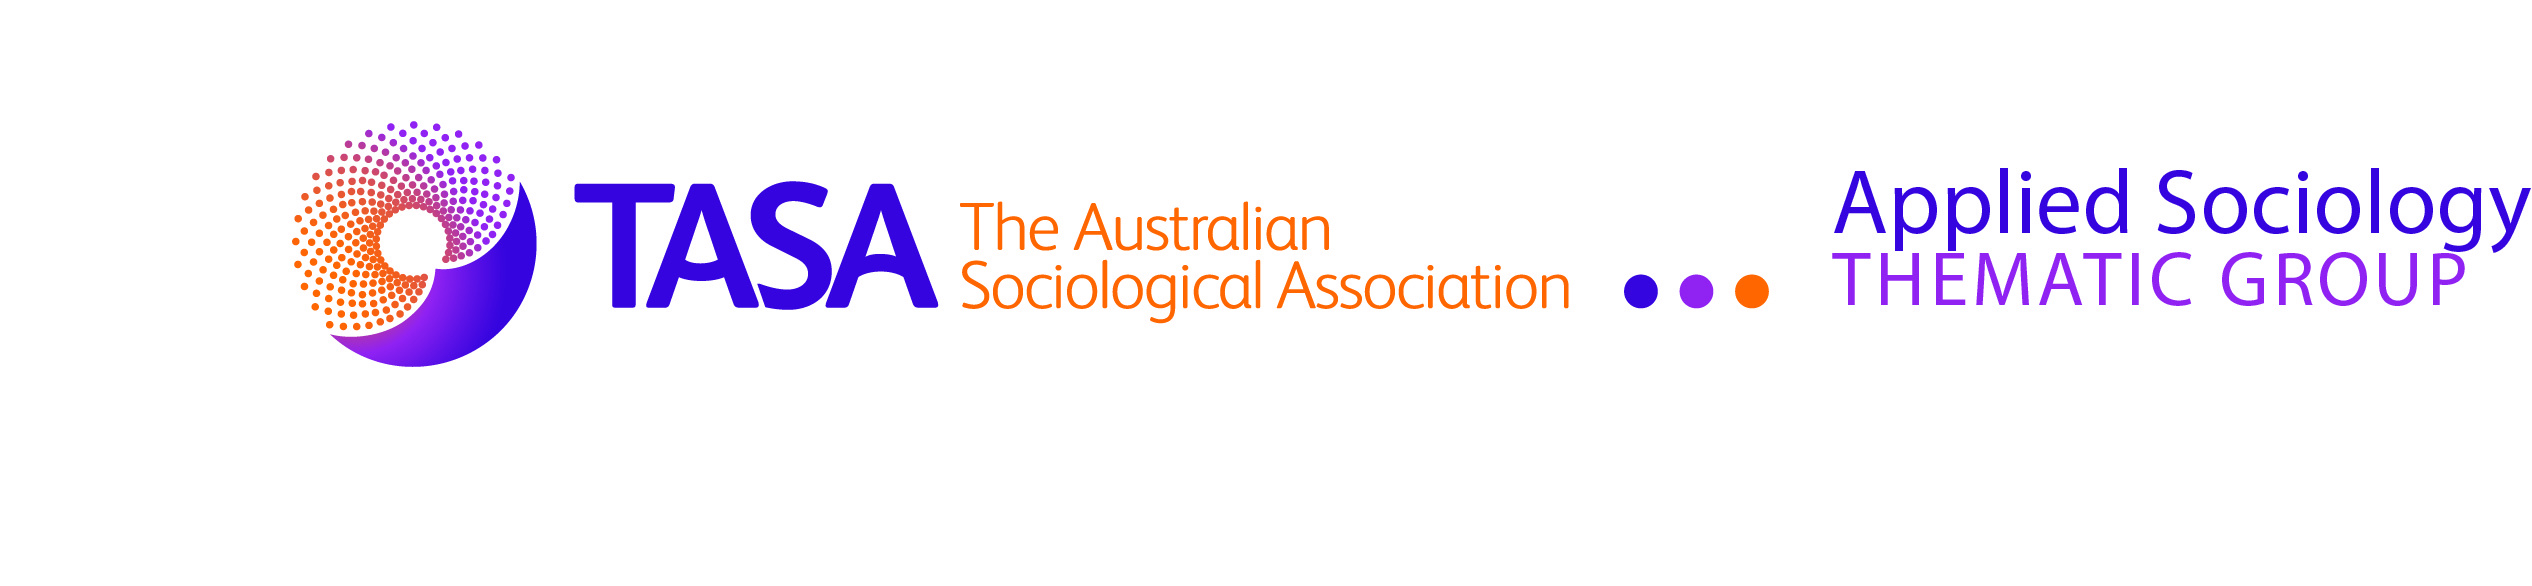 Applied Sociology TG logo